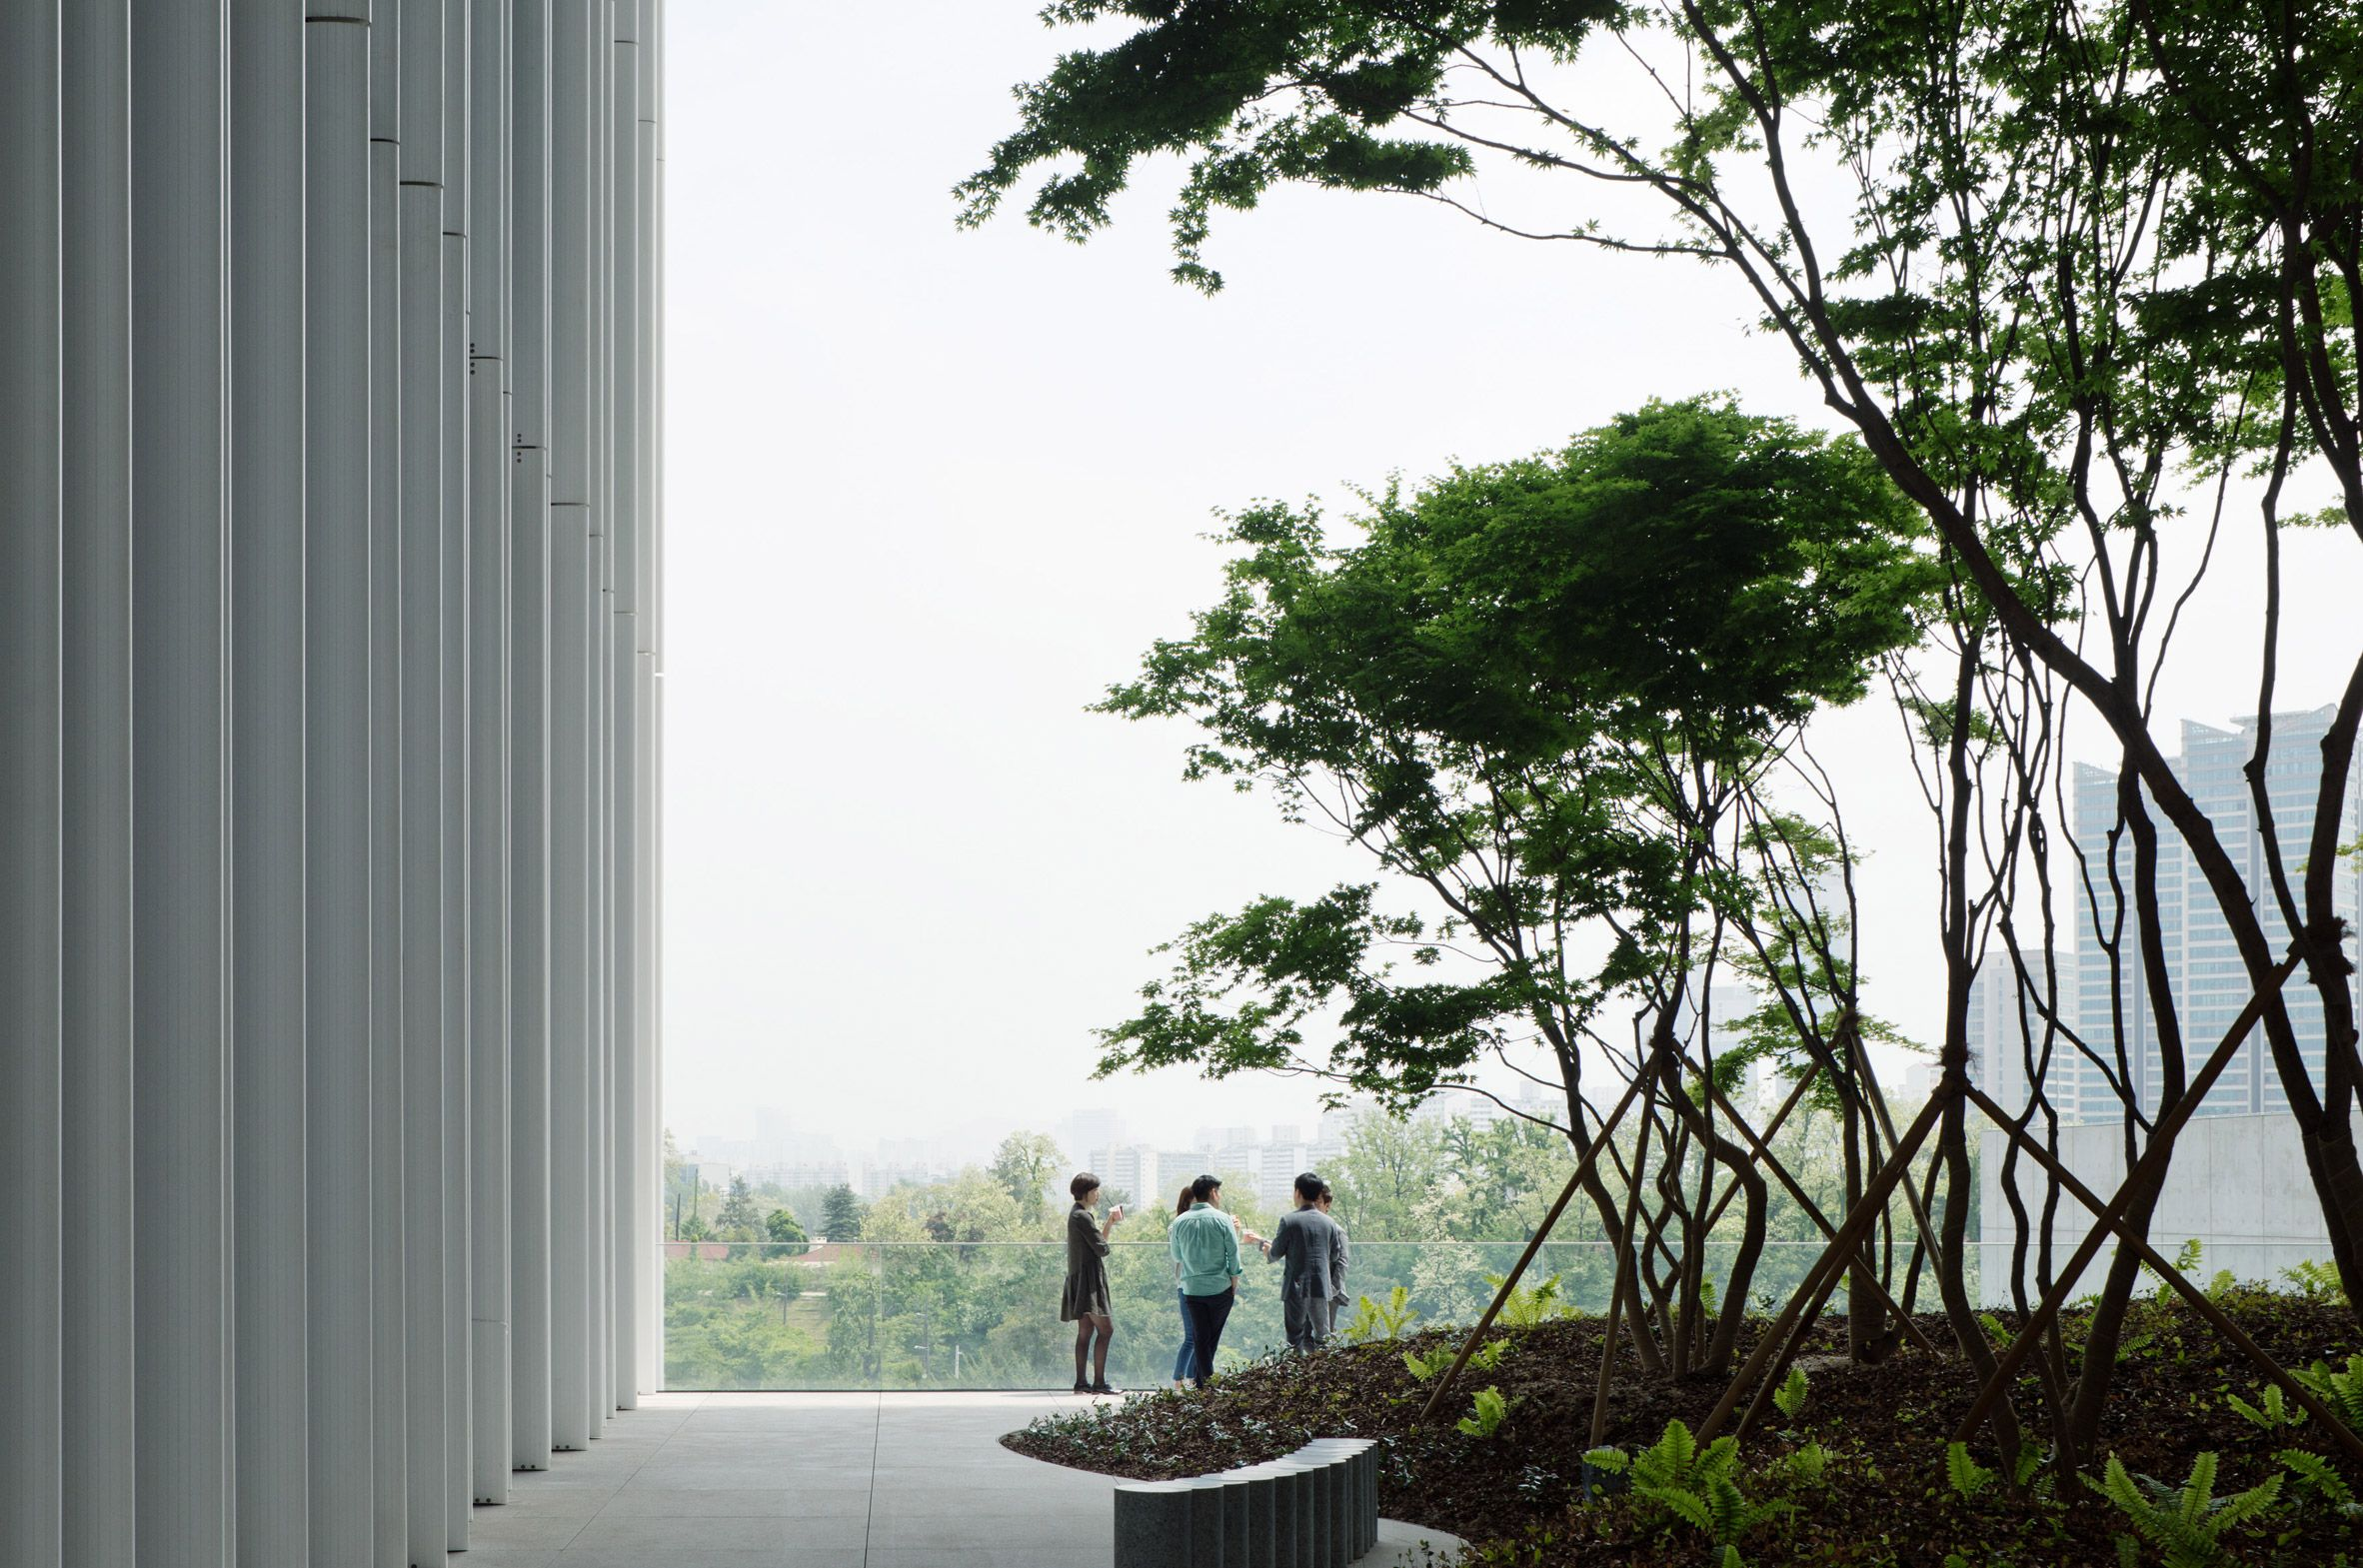 David Chipperfield Architects Completes Office With Hanging Gardens In Seoul David Chipperfield Architects Architect Roof Garden